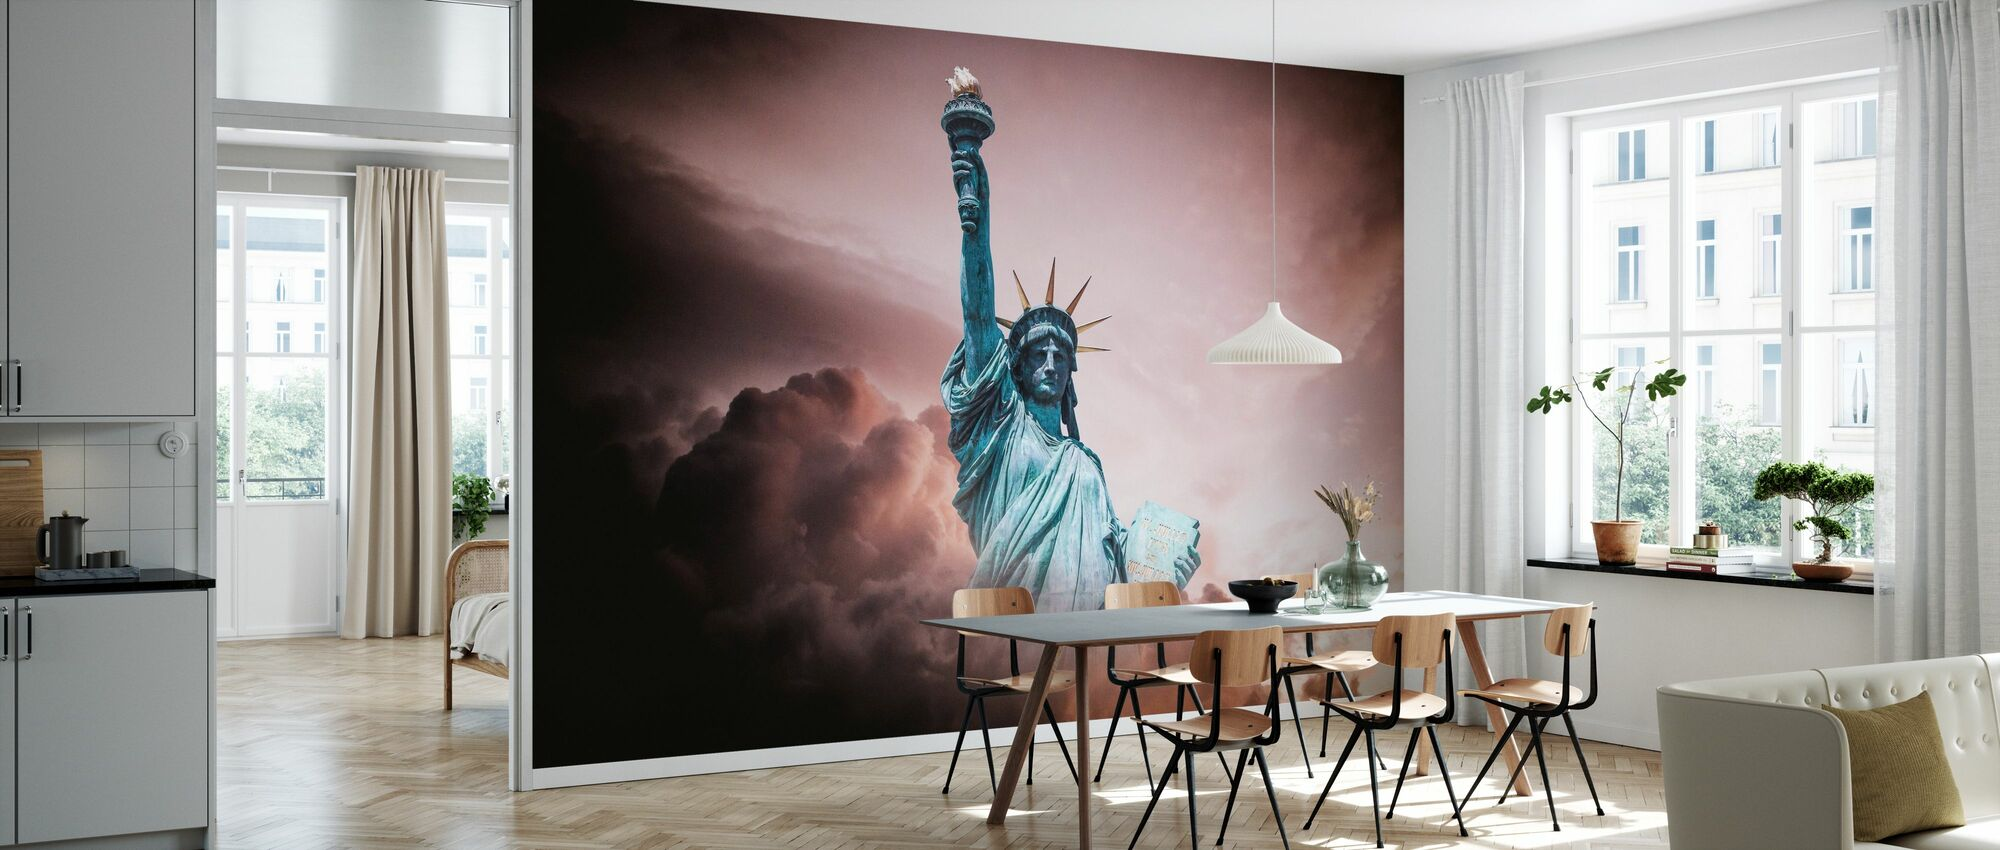 Statue of Liberty in Clouds - Wallpaper - Kitchen